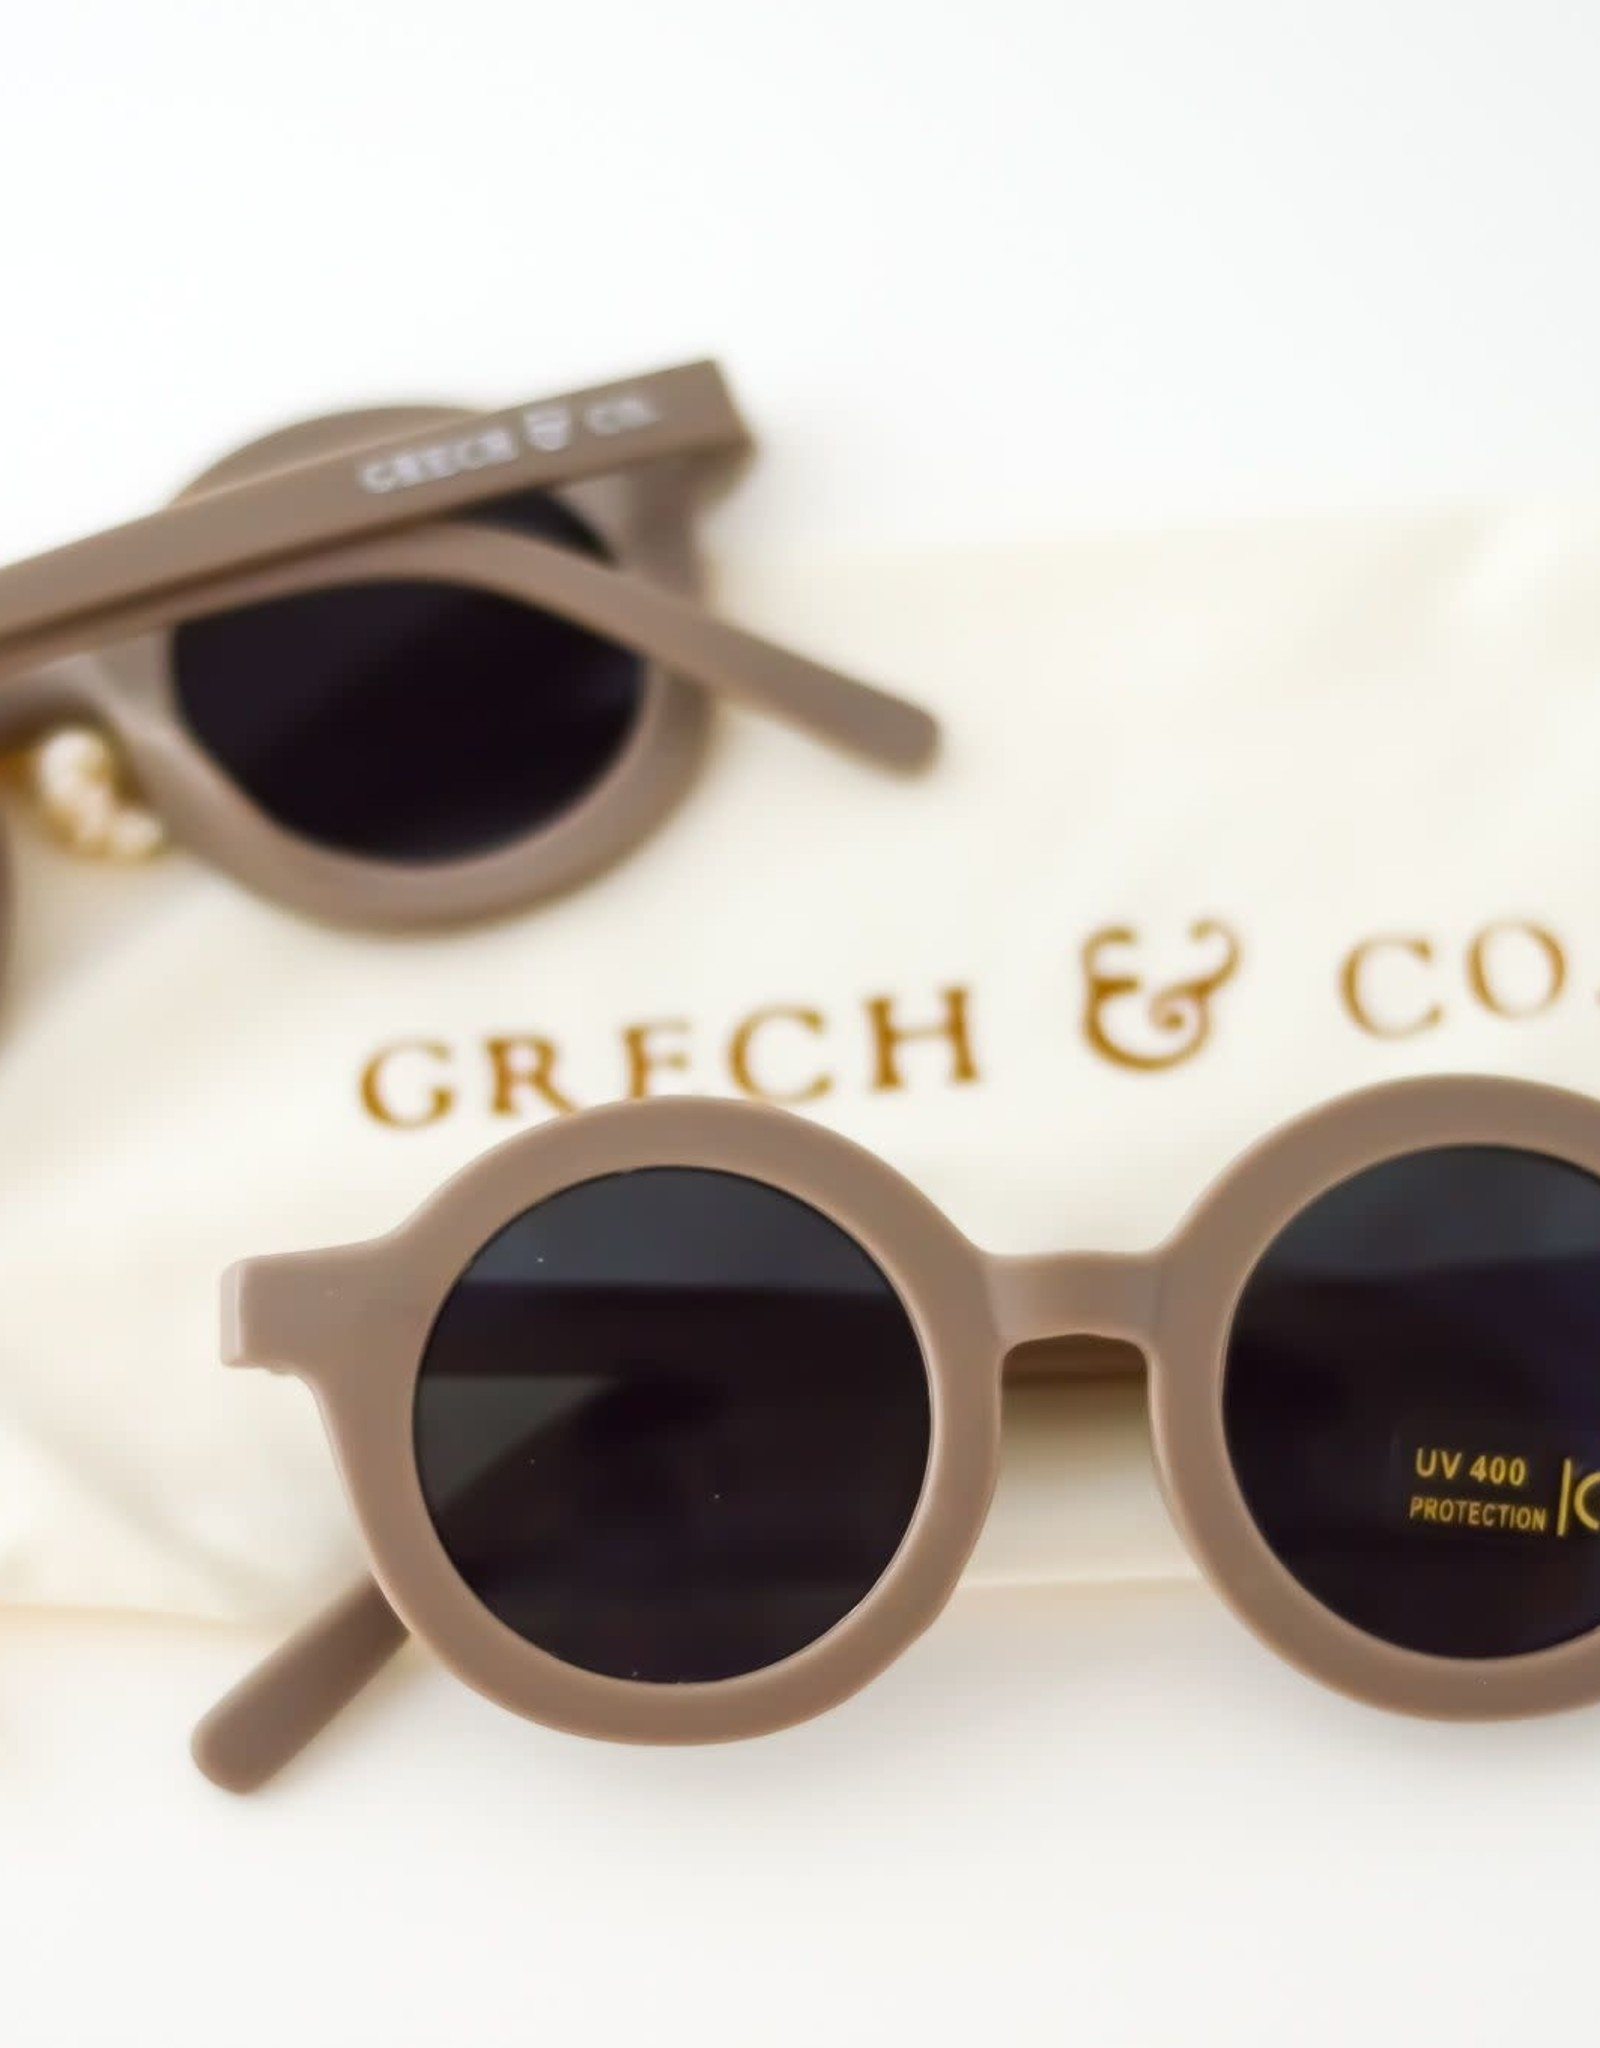 Grech & Co sustainable sunglasses- stone